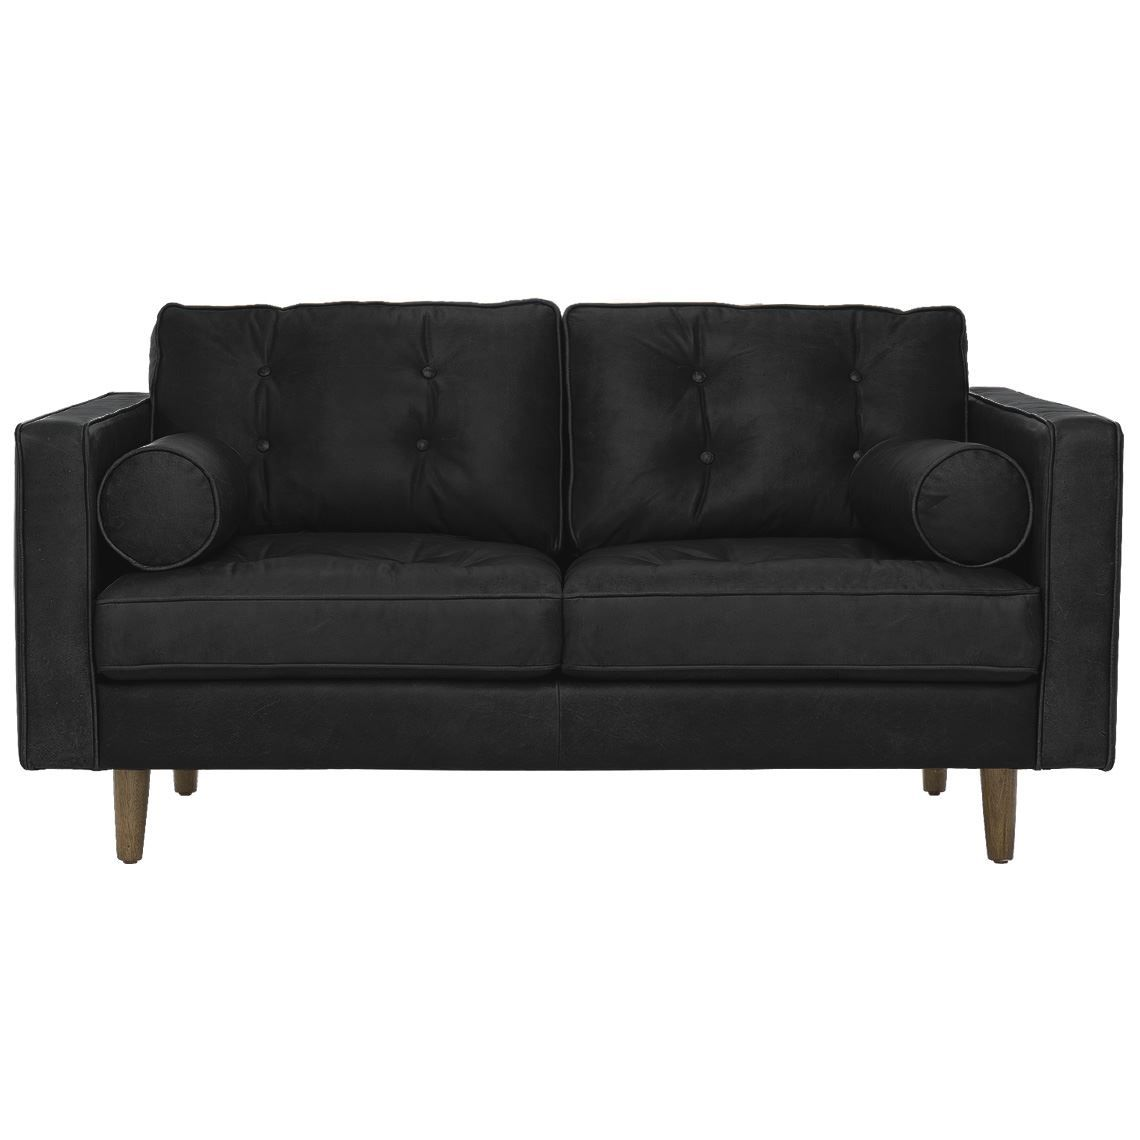 Superb Copenhagen 2 Seat Leather Sofa Black In 2019 Products Theyellowbook Wood Chair Design Ideas Theyellowbookinfo